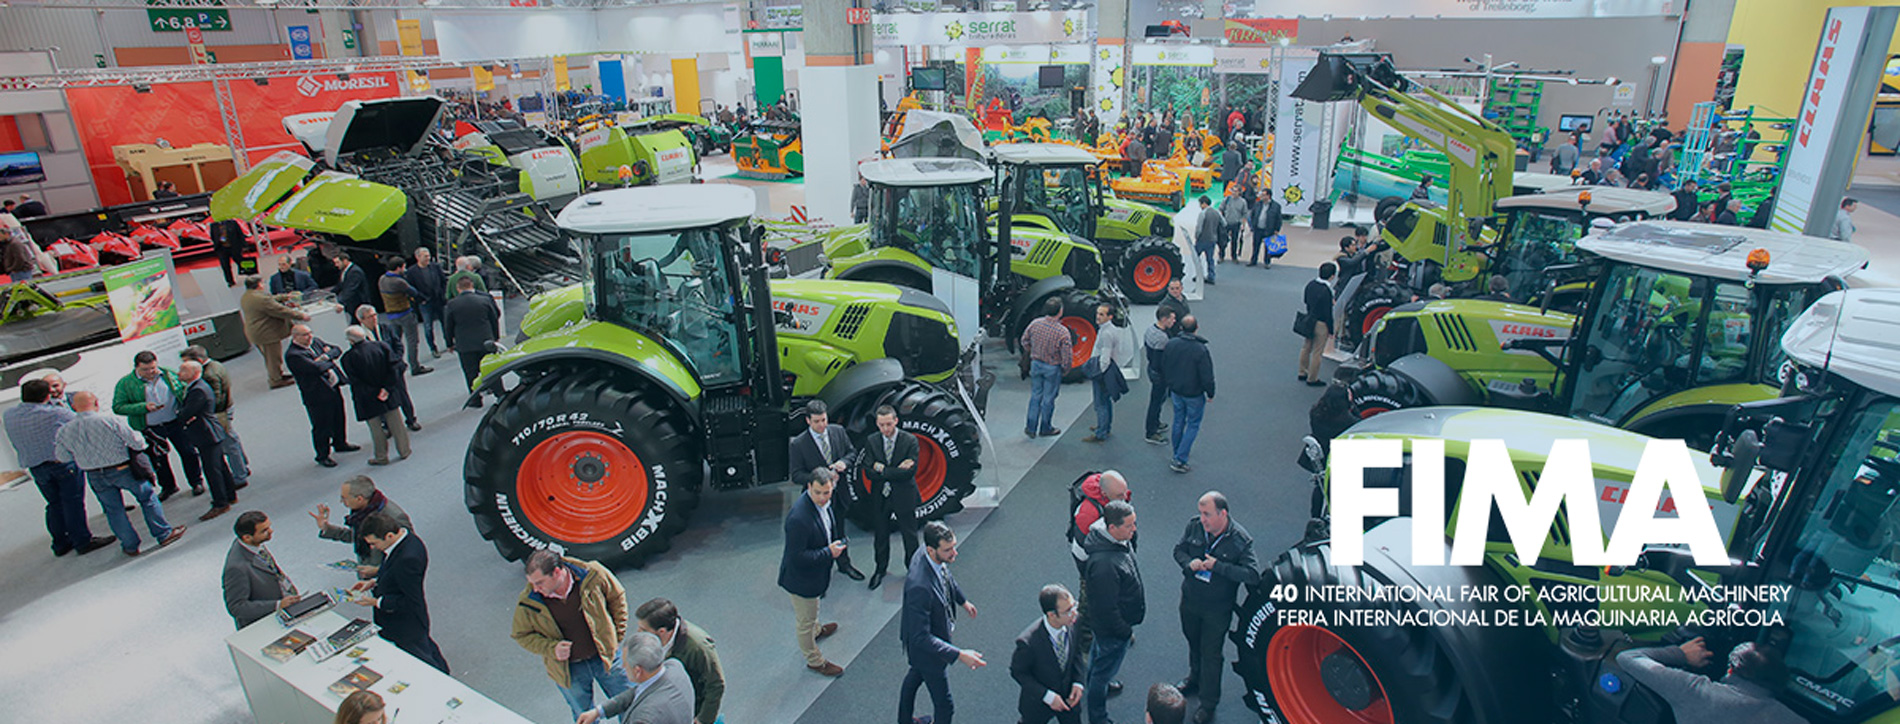 International Fair of Agricultural Machinery 2018